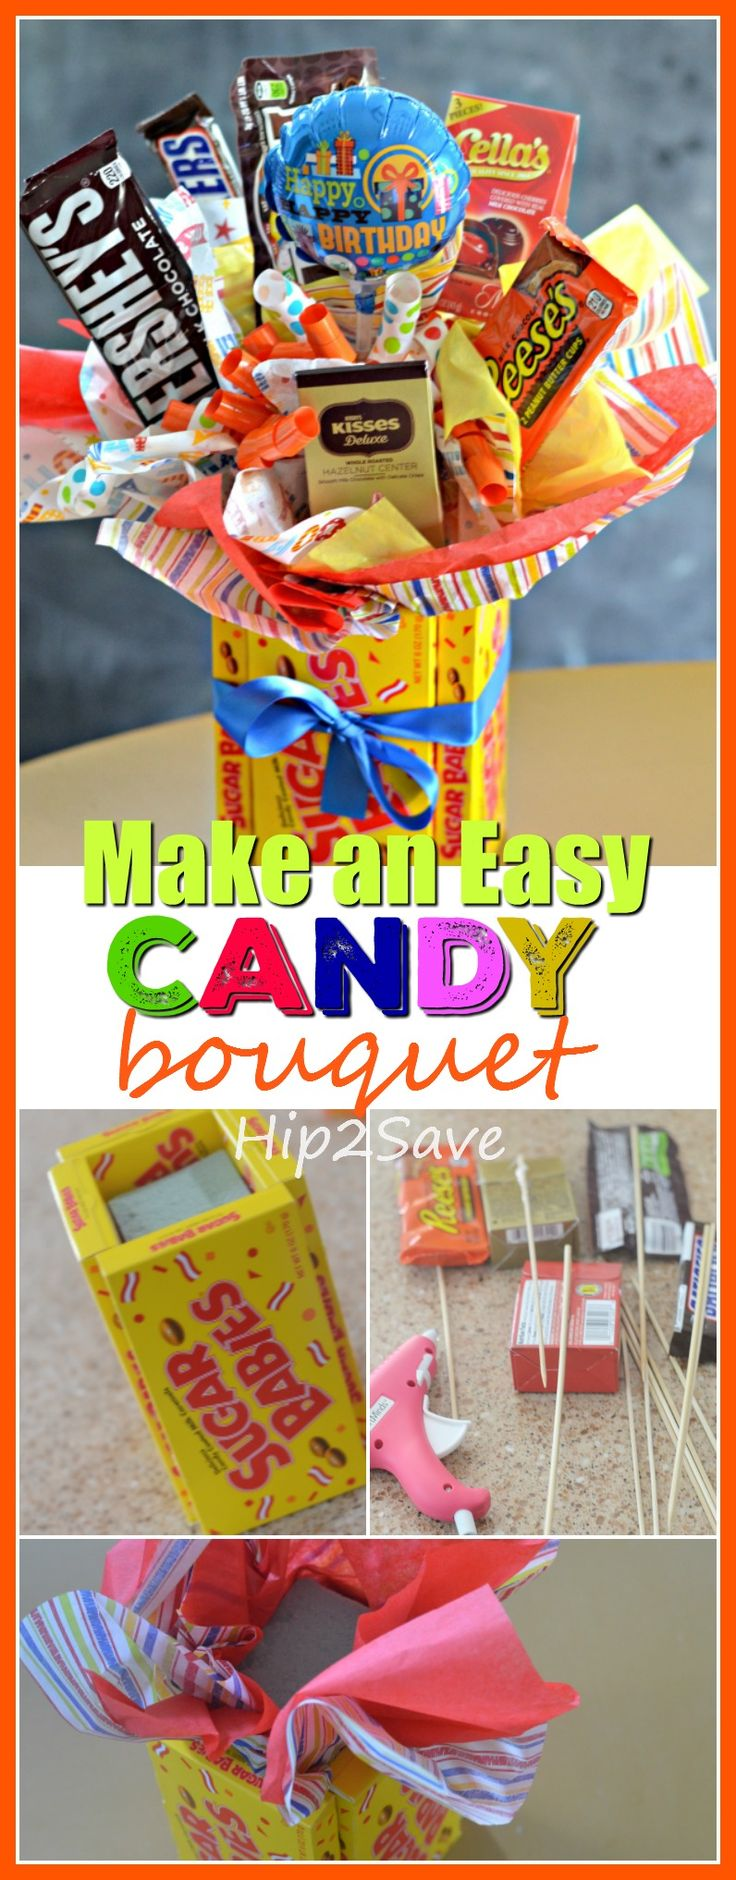 If you are looking for a fun and thoughtful homemade gift idea, consider creating a custom candy bouquet perfect for many different occasions!